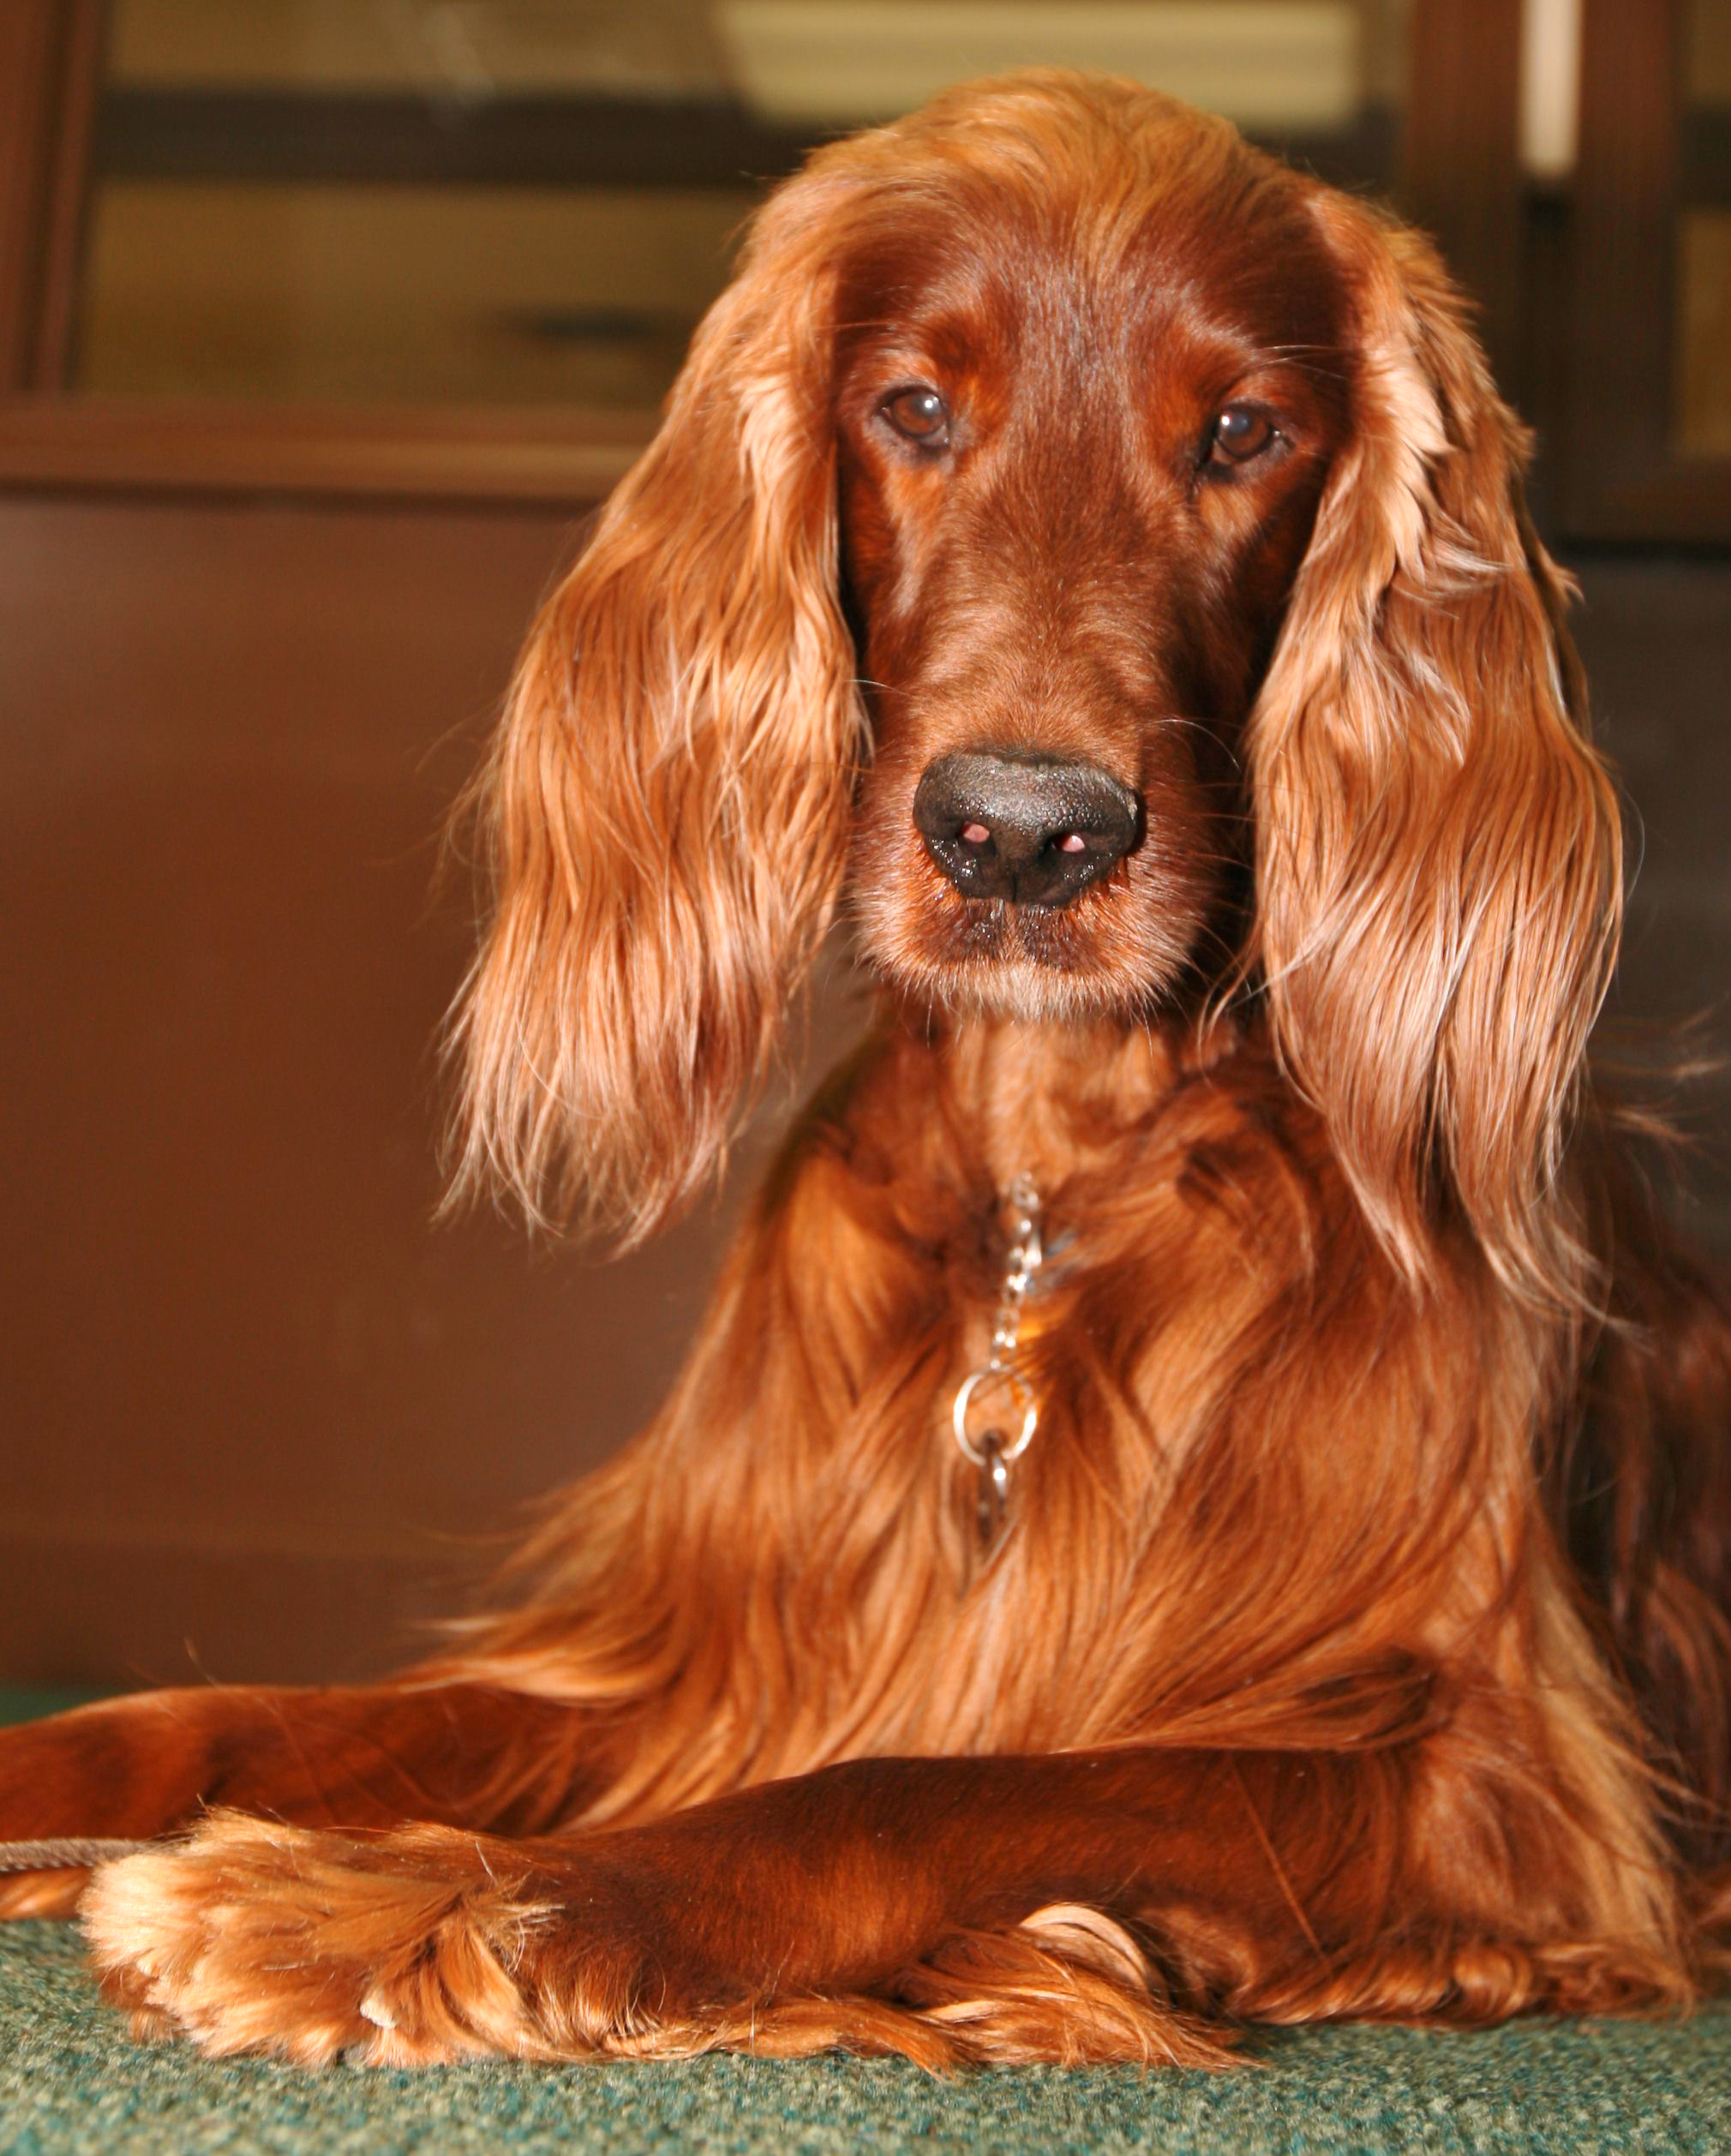 Sad Irish Setter dog  wallpaper